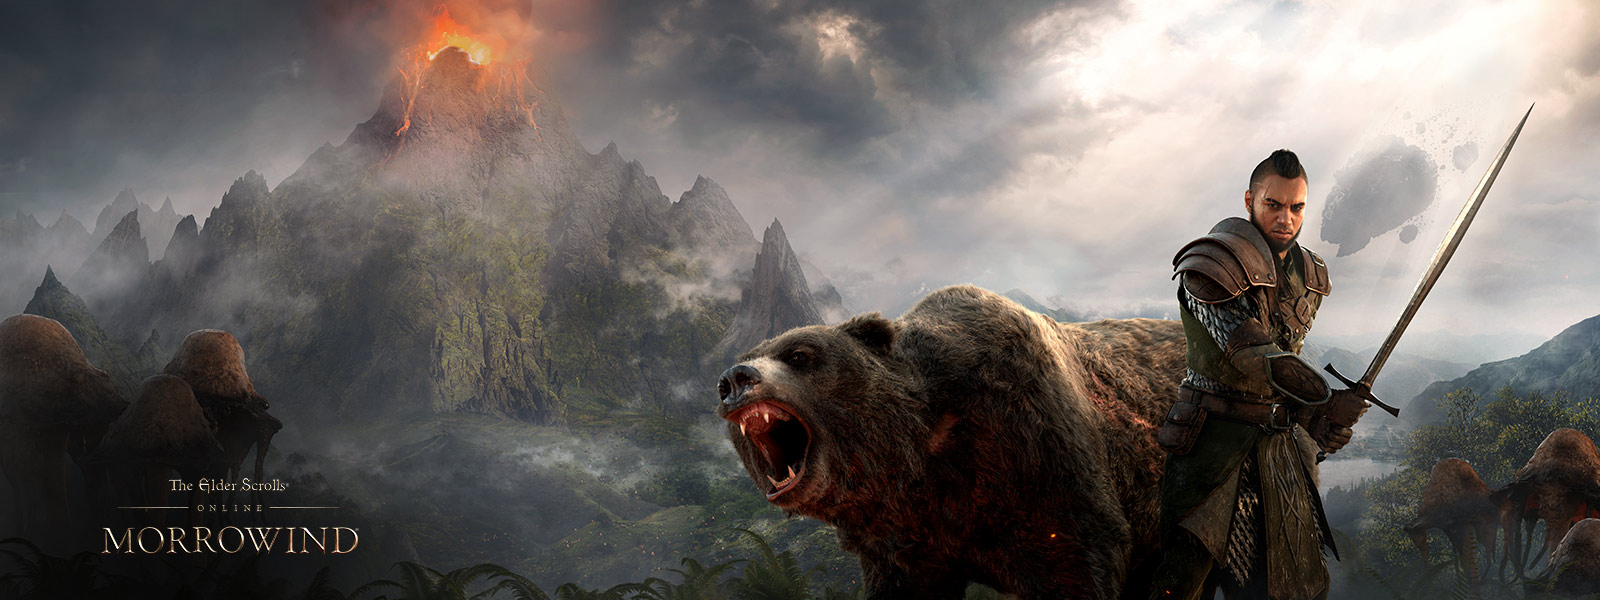 Playable character holding a sword while standing next to a bear with a volcano in the background